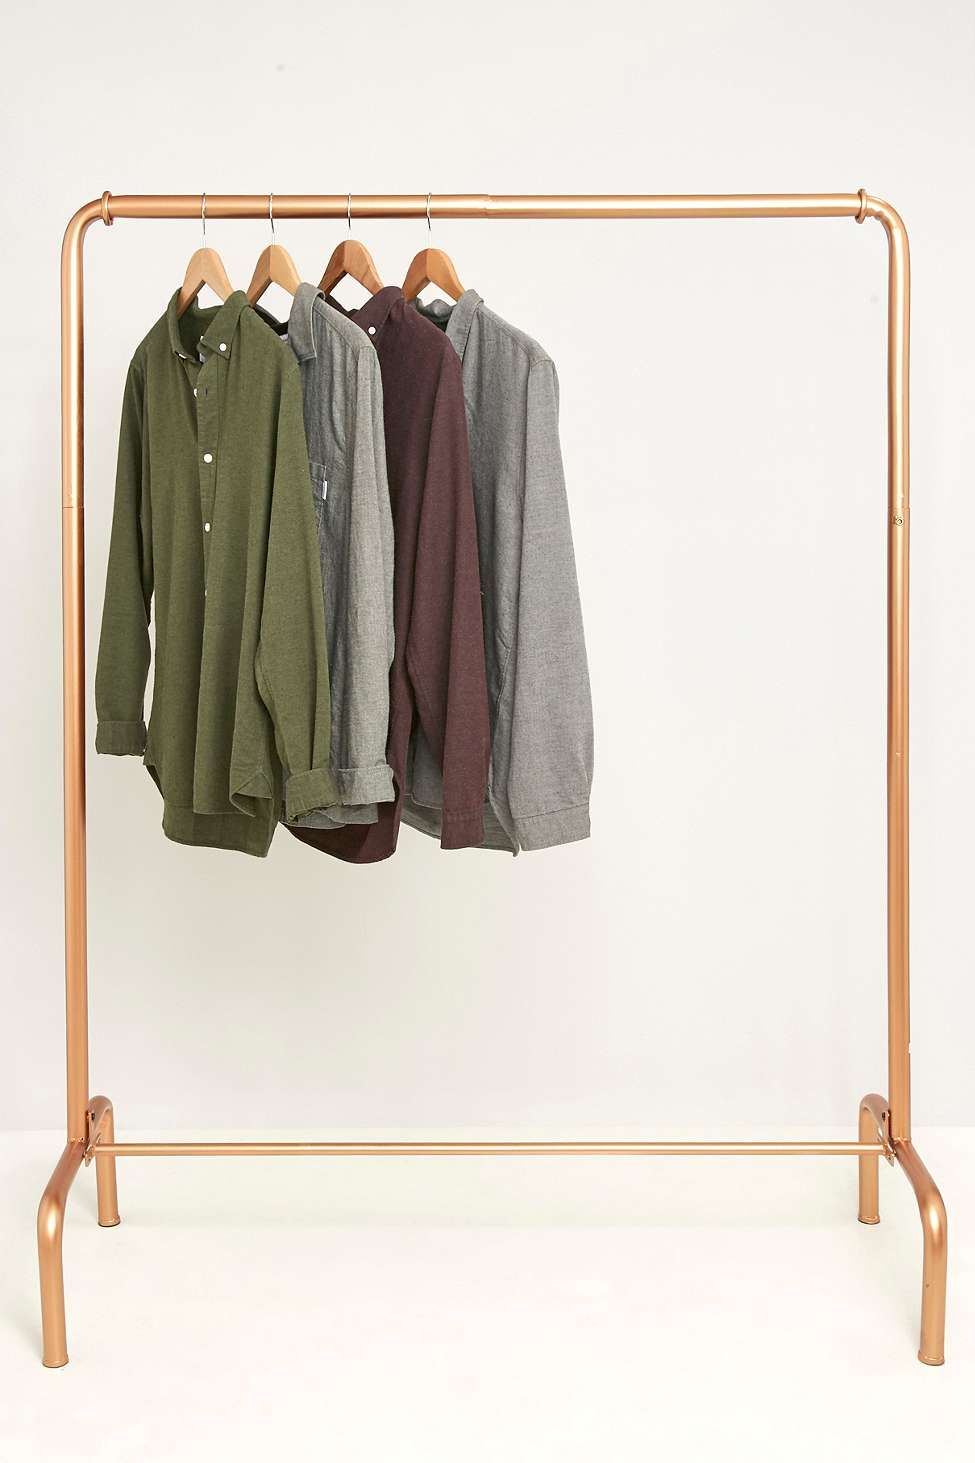 Kleiderständer Urban Outfitters Gold Rail Clothing Rack For The Home Dresser Bed Clothes Rail